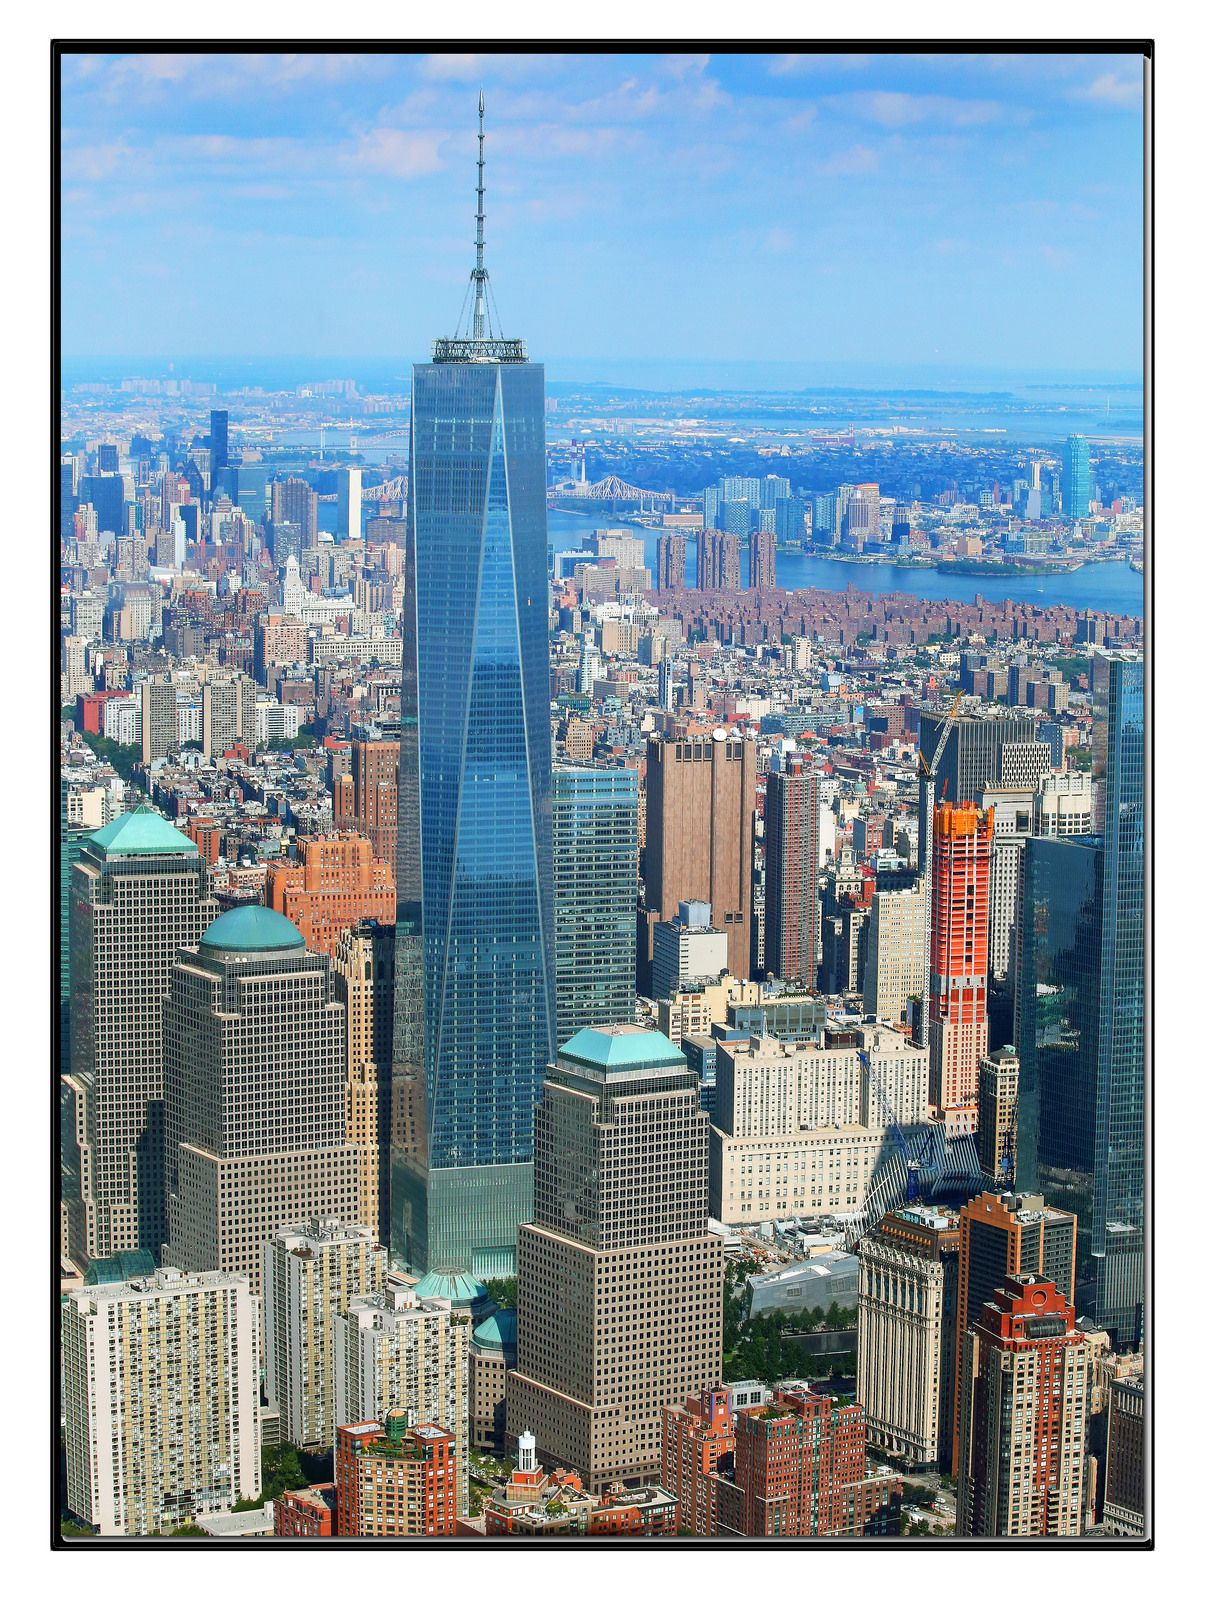 Expo Muebles Wtc D'Europe - New York One World Trade Center 1 776 Pinnacle 1 373 Roof [mjhdah]https://pbs.twimg.com/media/CJz2W26UMAAcCDd.jpg